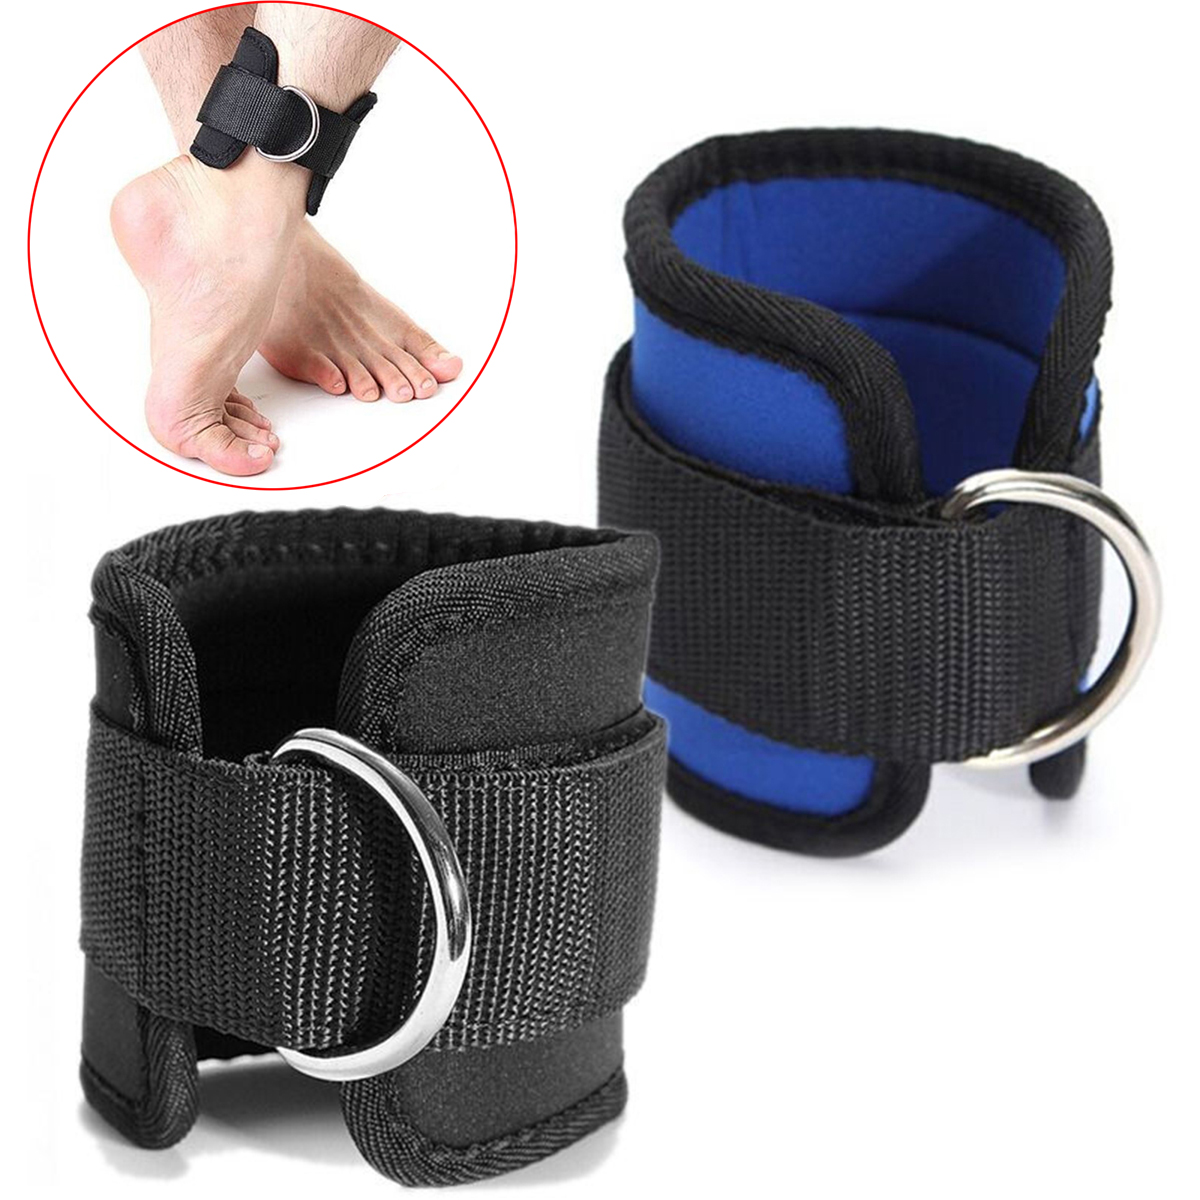 Terbaru D-ring Ankle Strap Buckle Body Building Rintangan Band Gym Multi Thigh Leg Ankle Cuffs Power Weight Lifting Tali Kebugaran